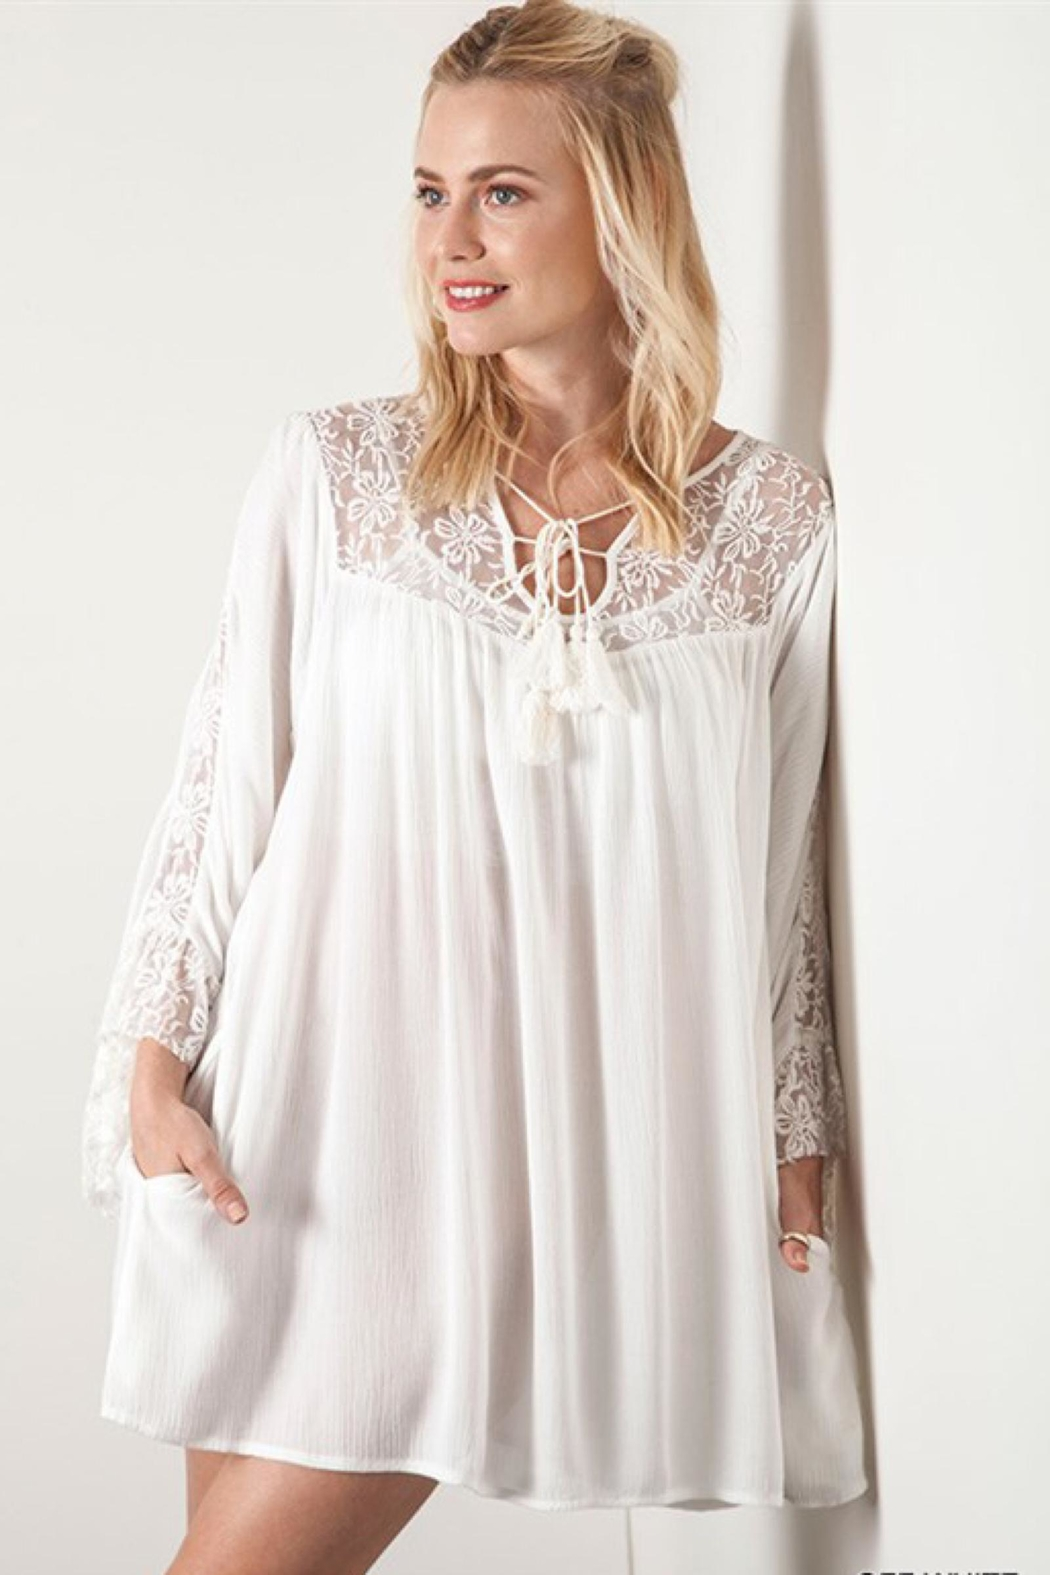 People Outfitter Lace Babydoll Dress - Main Image